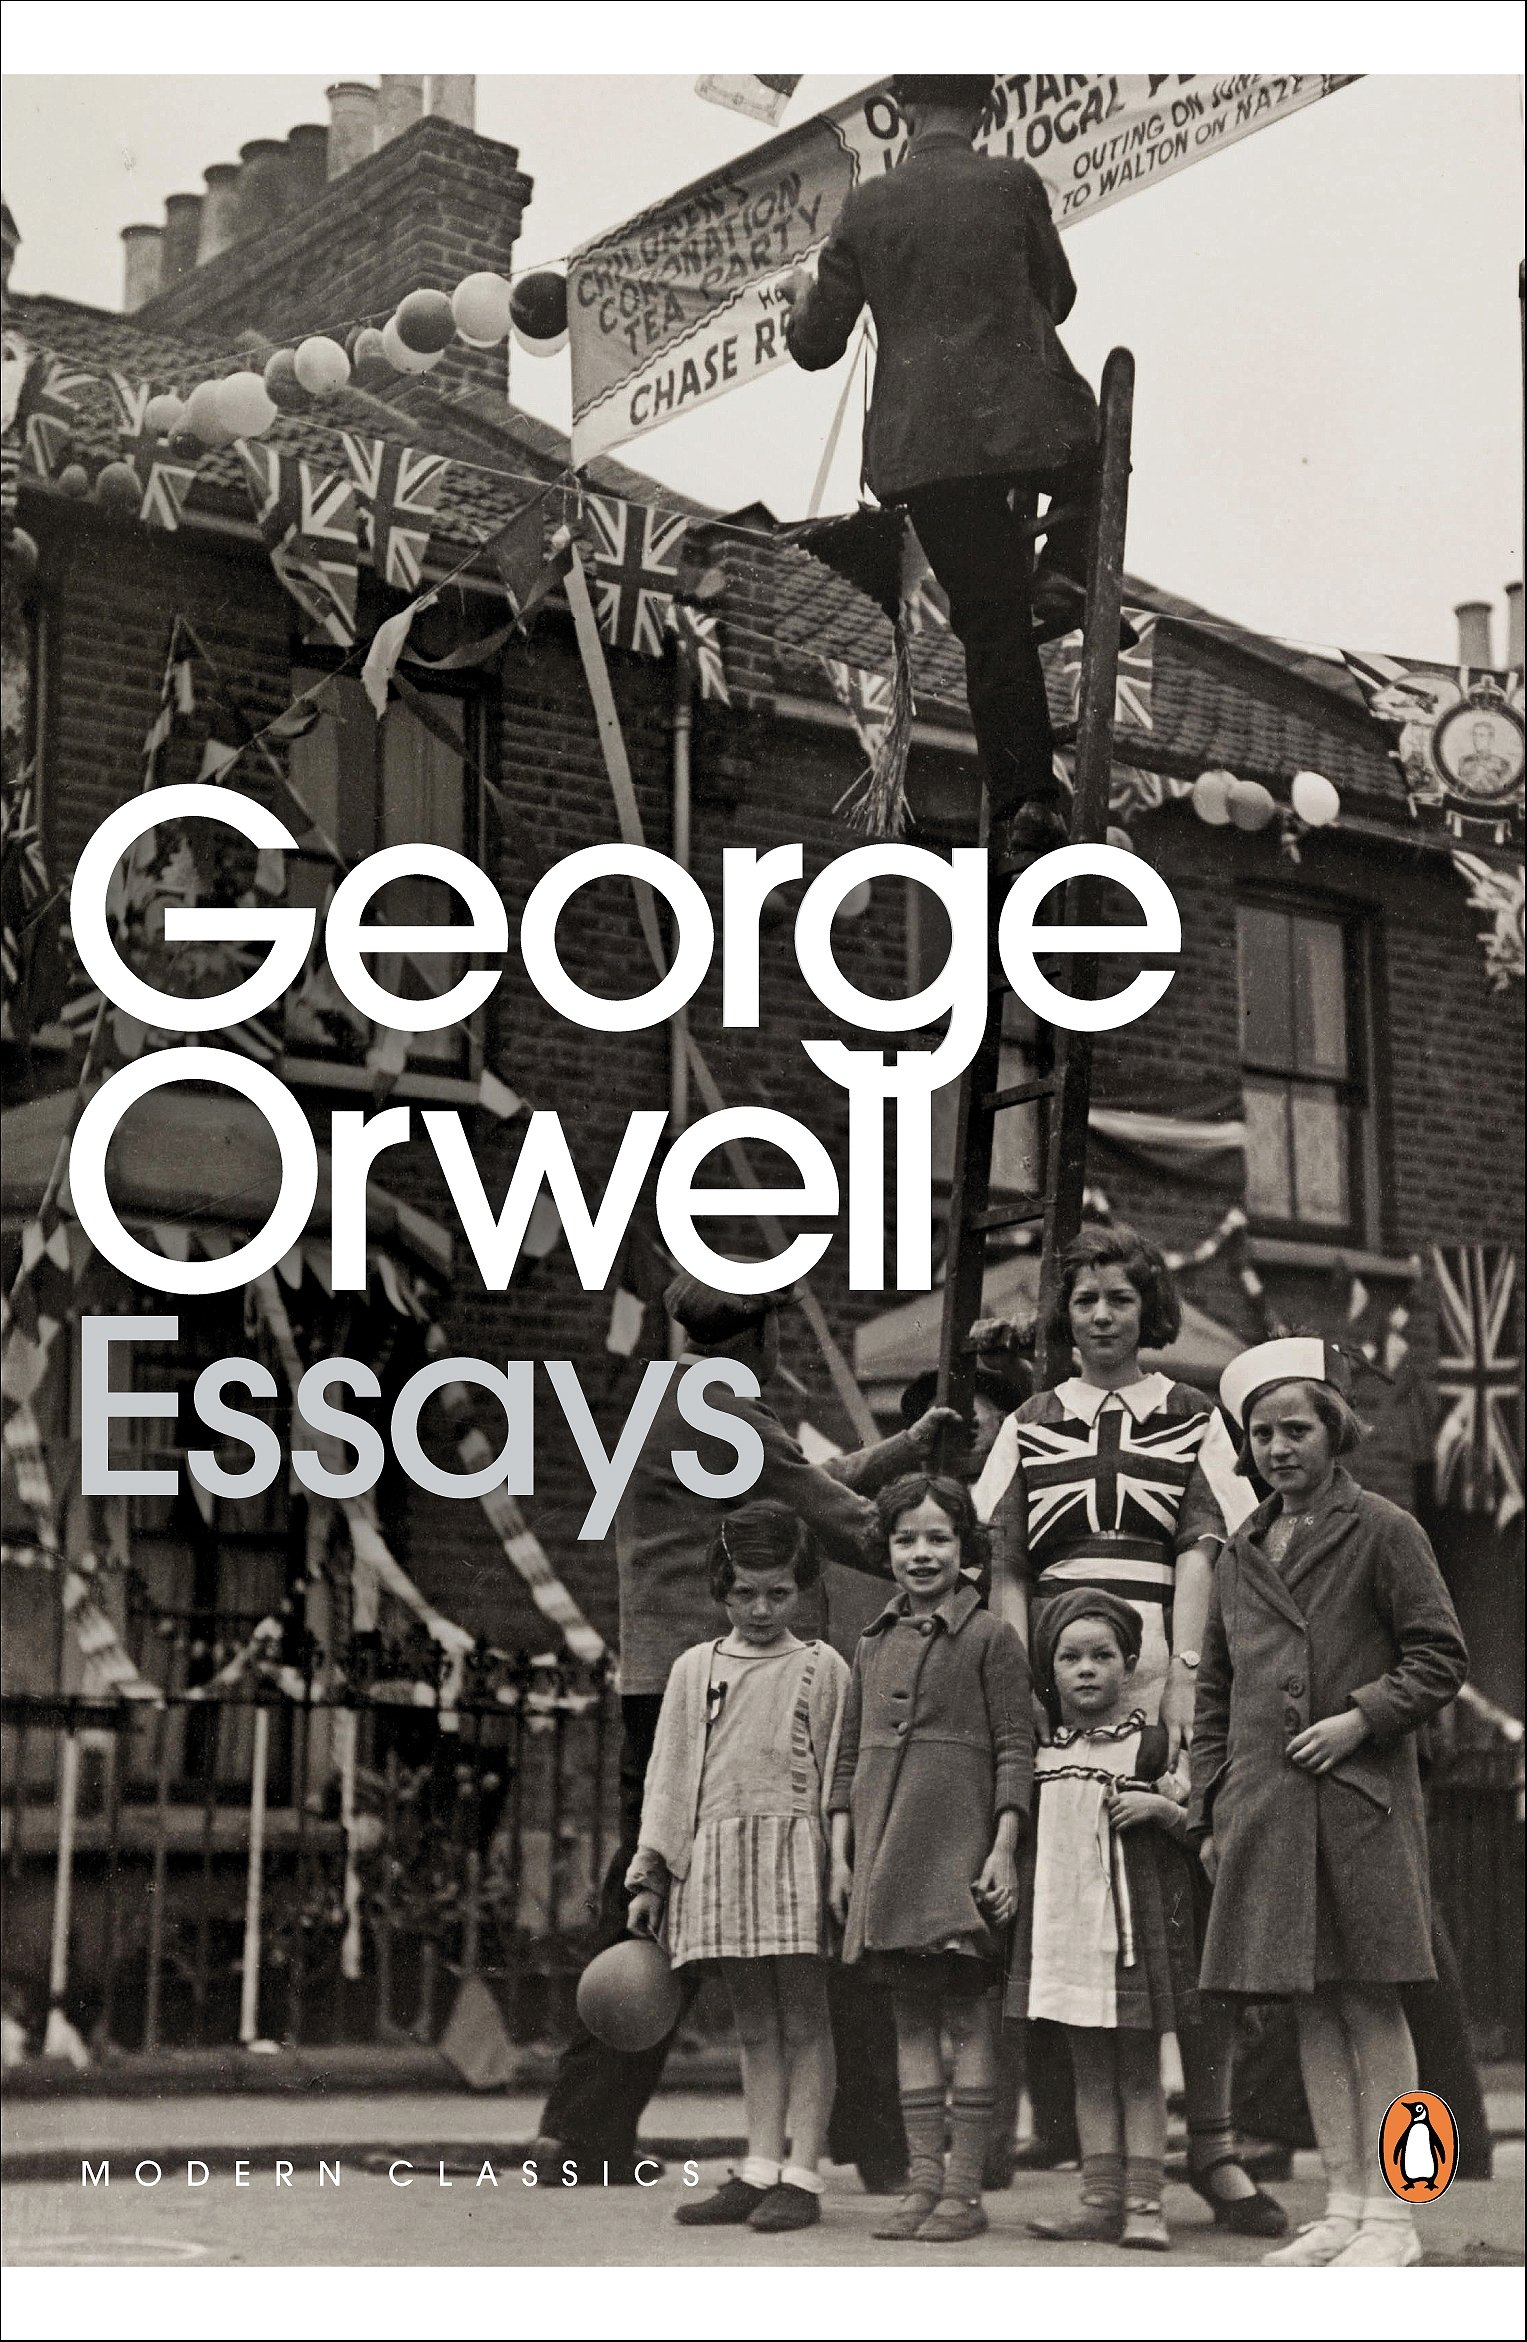 essays penguin modern classics co uk george orwell essays penguin modern classics co uk george orwell bernard crick 8601300112251 books